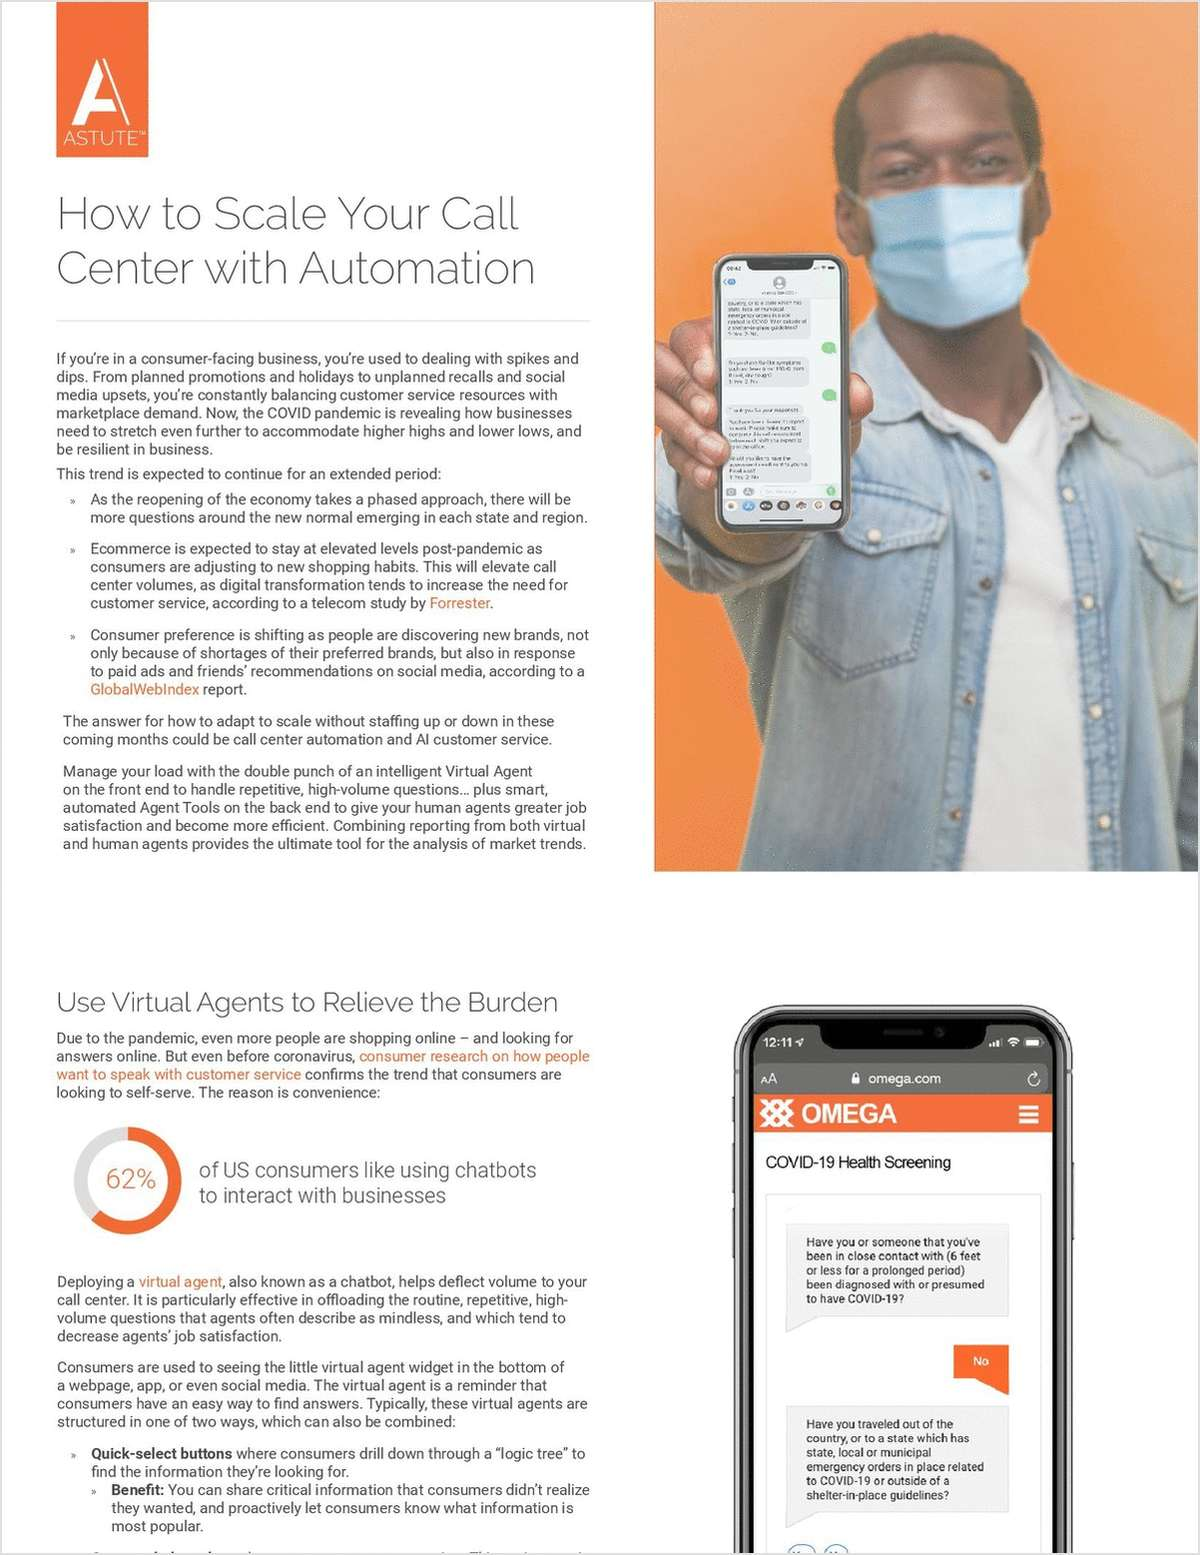 Your Guide to Scaling and Adapting Your Call Center Through Automation